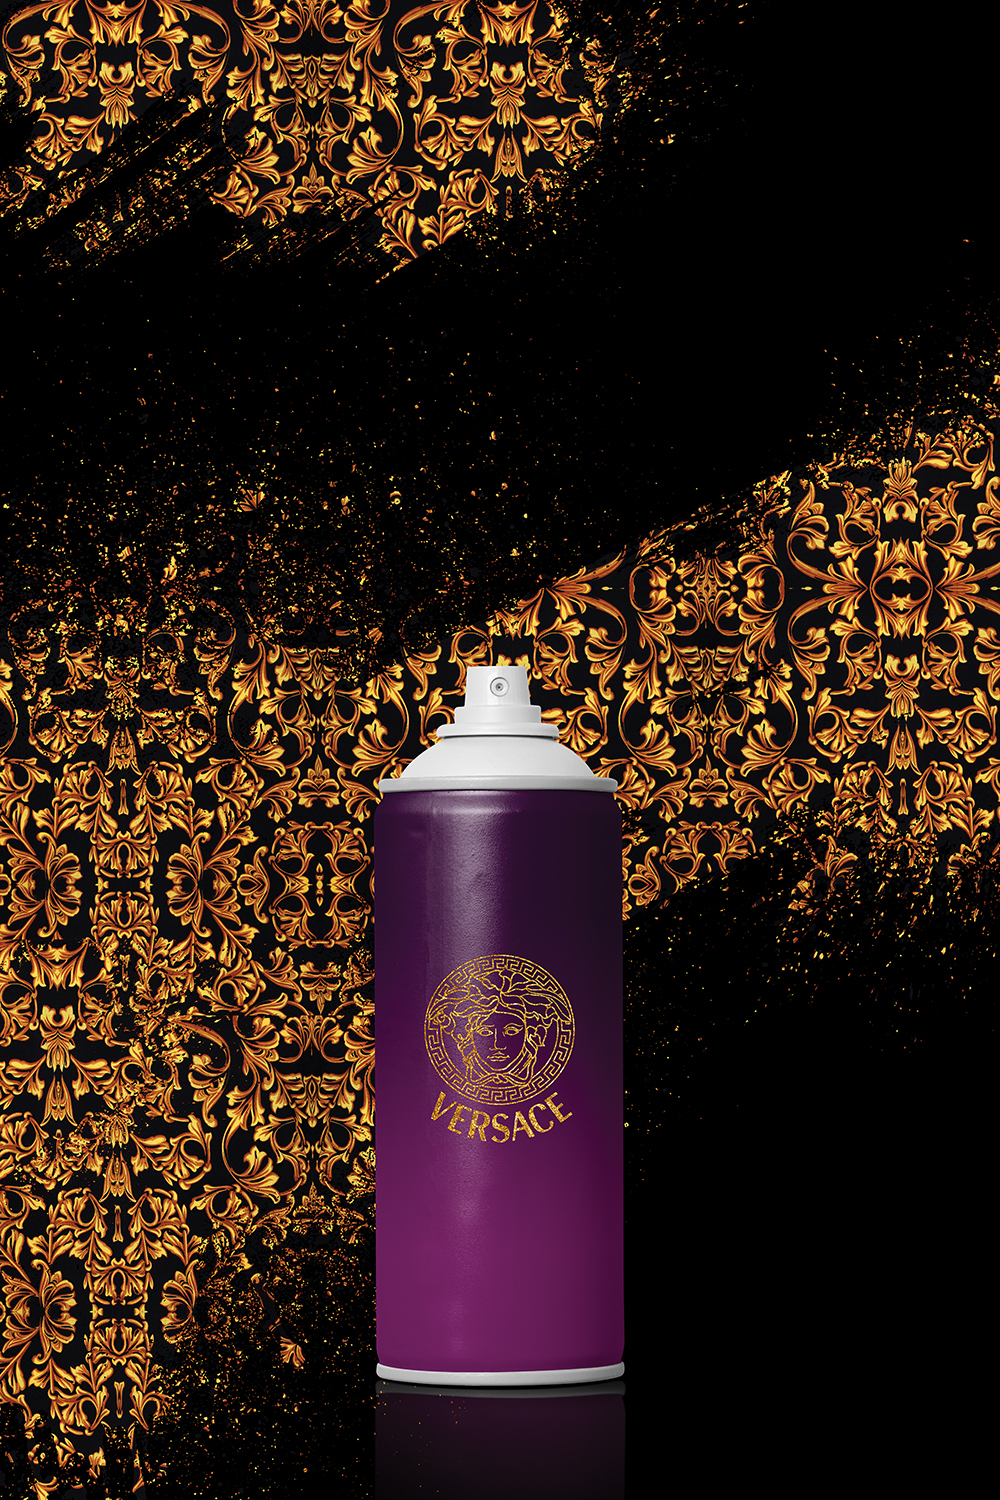 Graphic of a purple spray can with Versace logo on front on a black background sprayed with gold Versace pattern